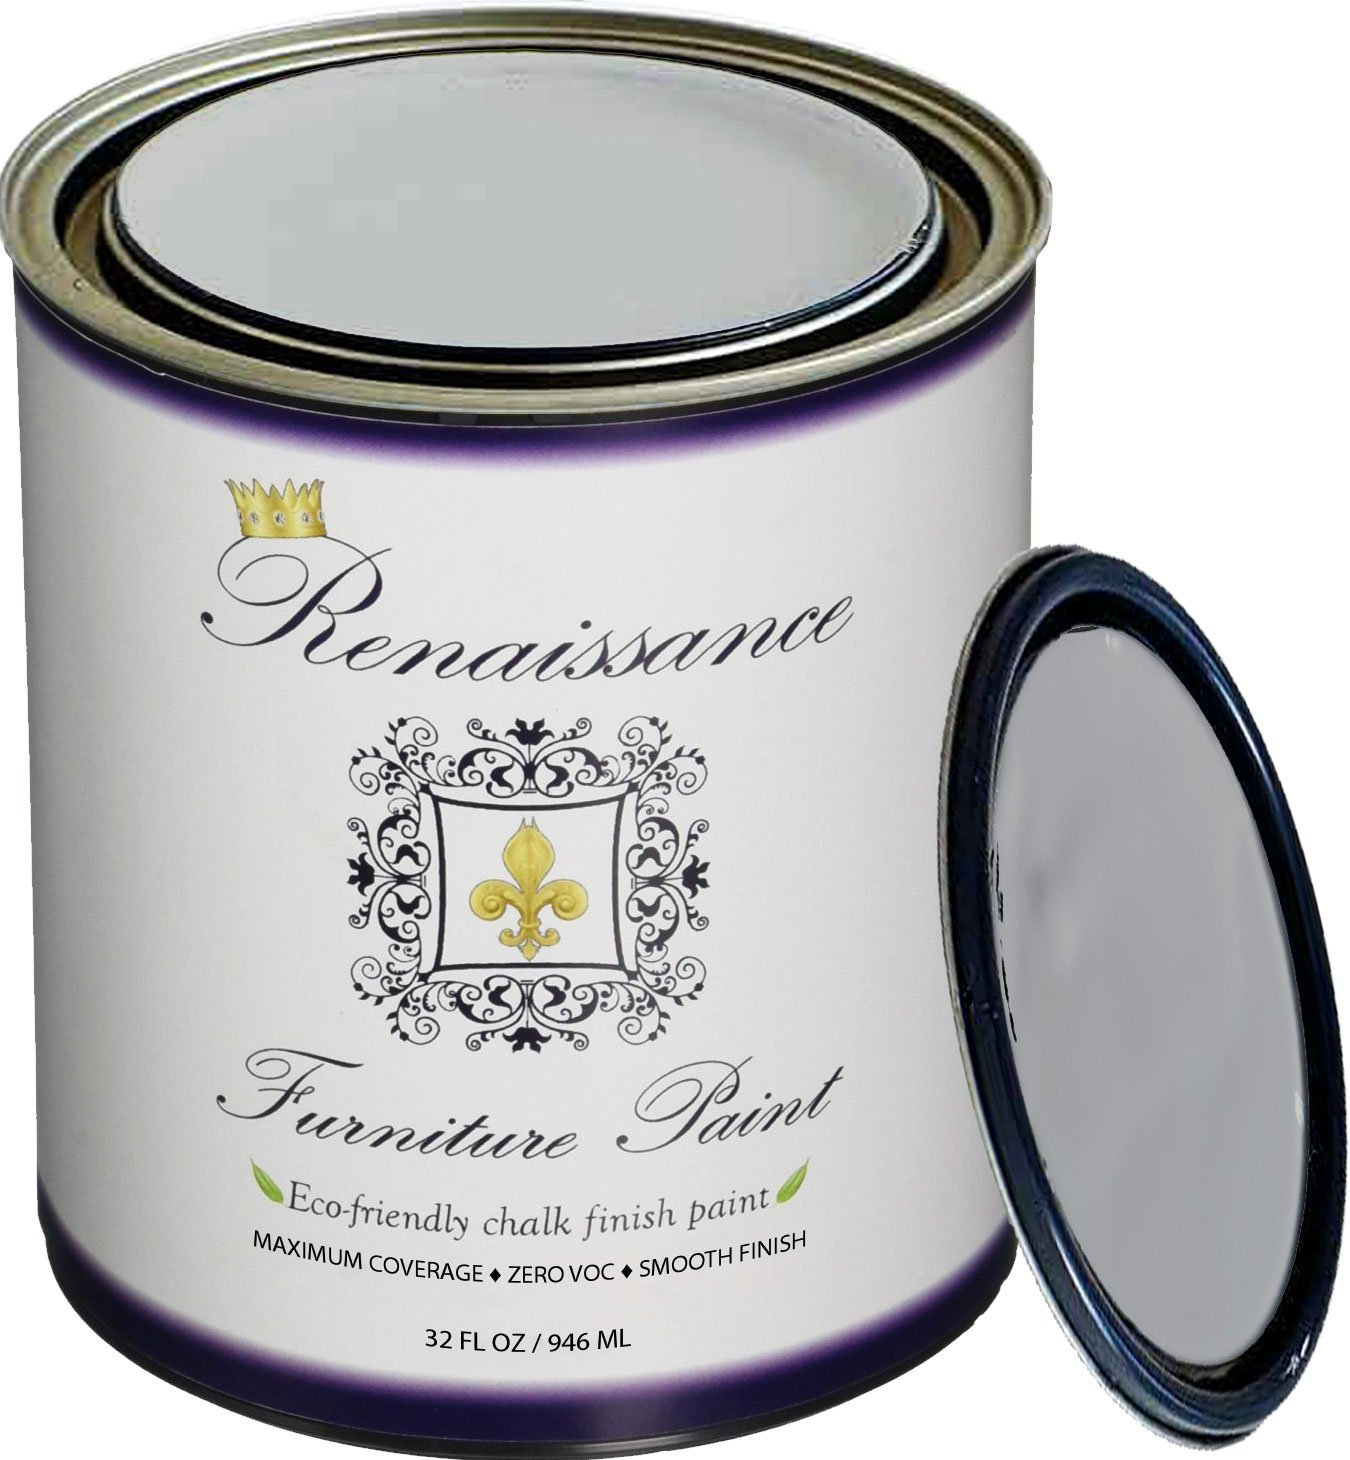 Renaissance Chalk Paint